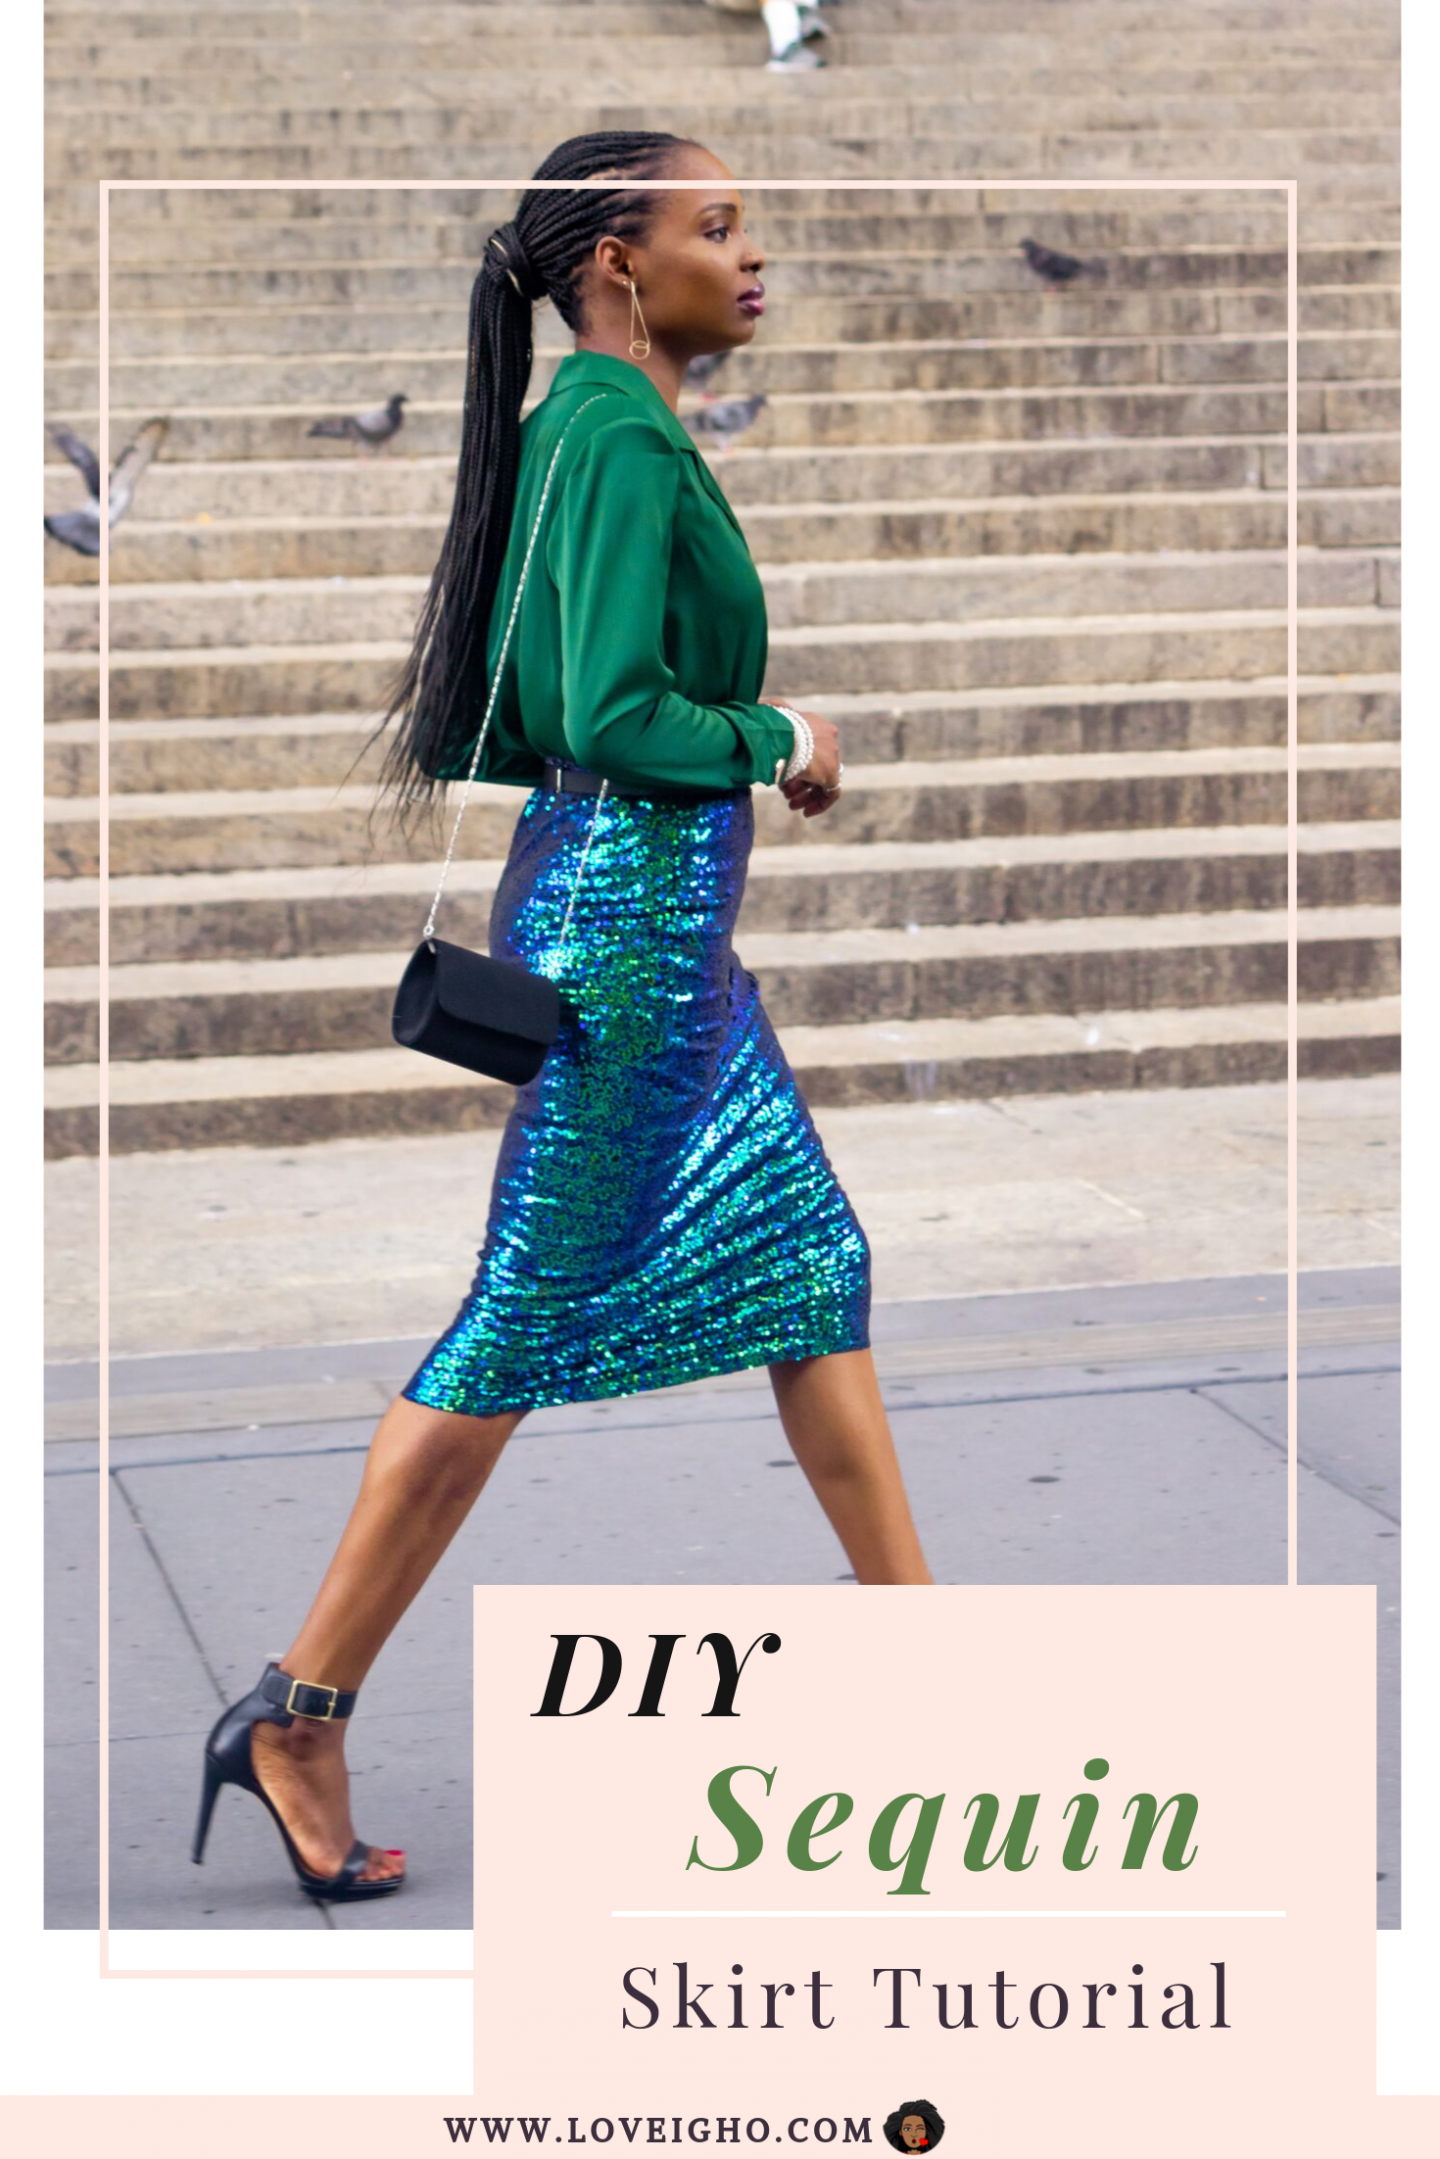 DIY Sequin Skirt Tutorial | Love Igho